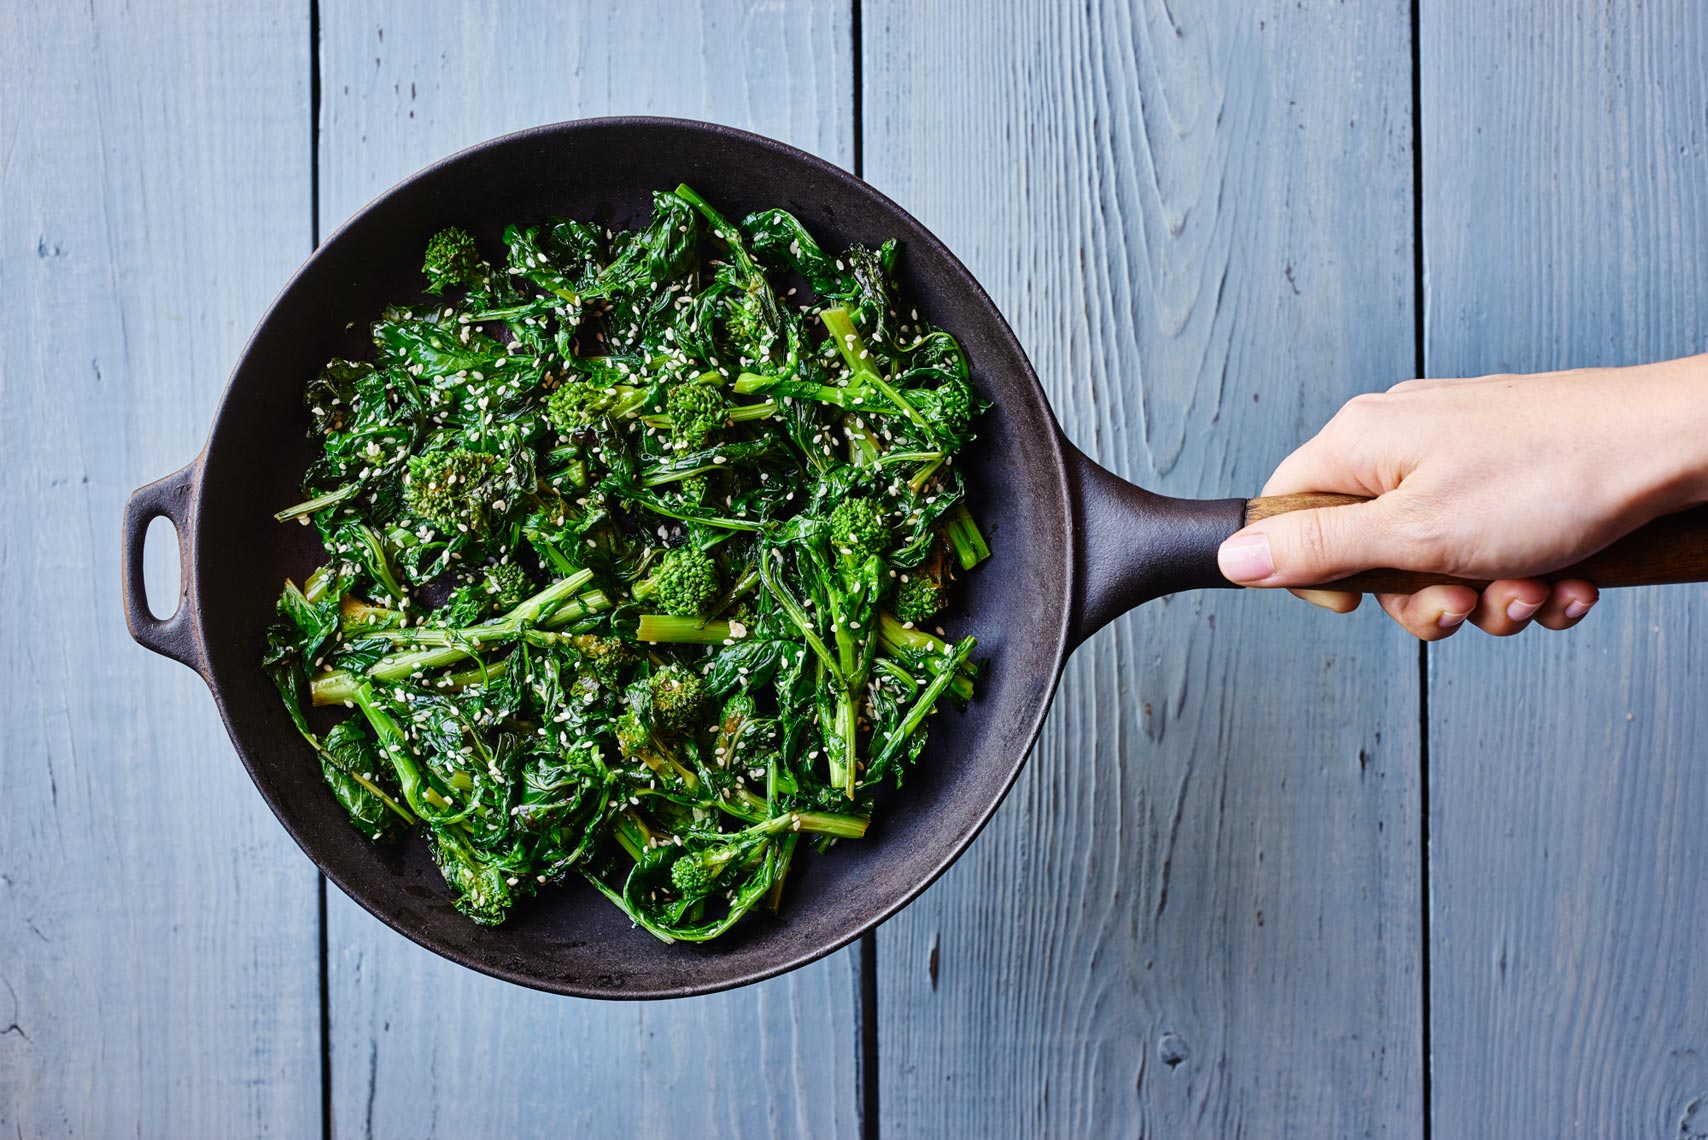 Broccoli Rabe Social Media Campaign NYC Food Photography Jennifer May